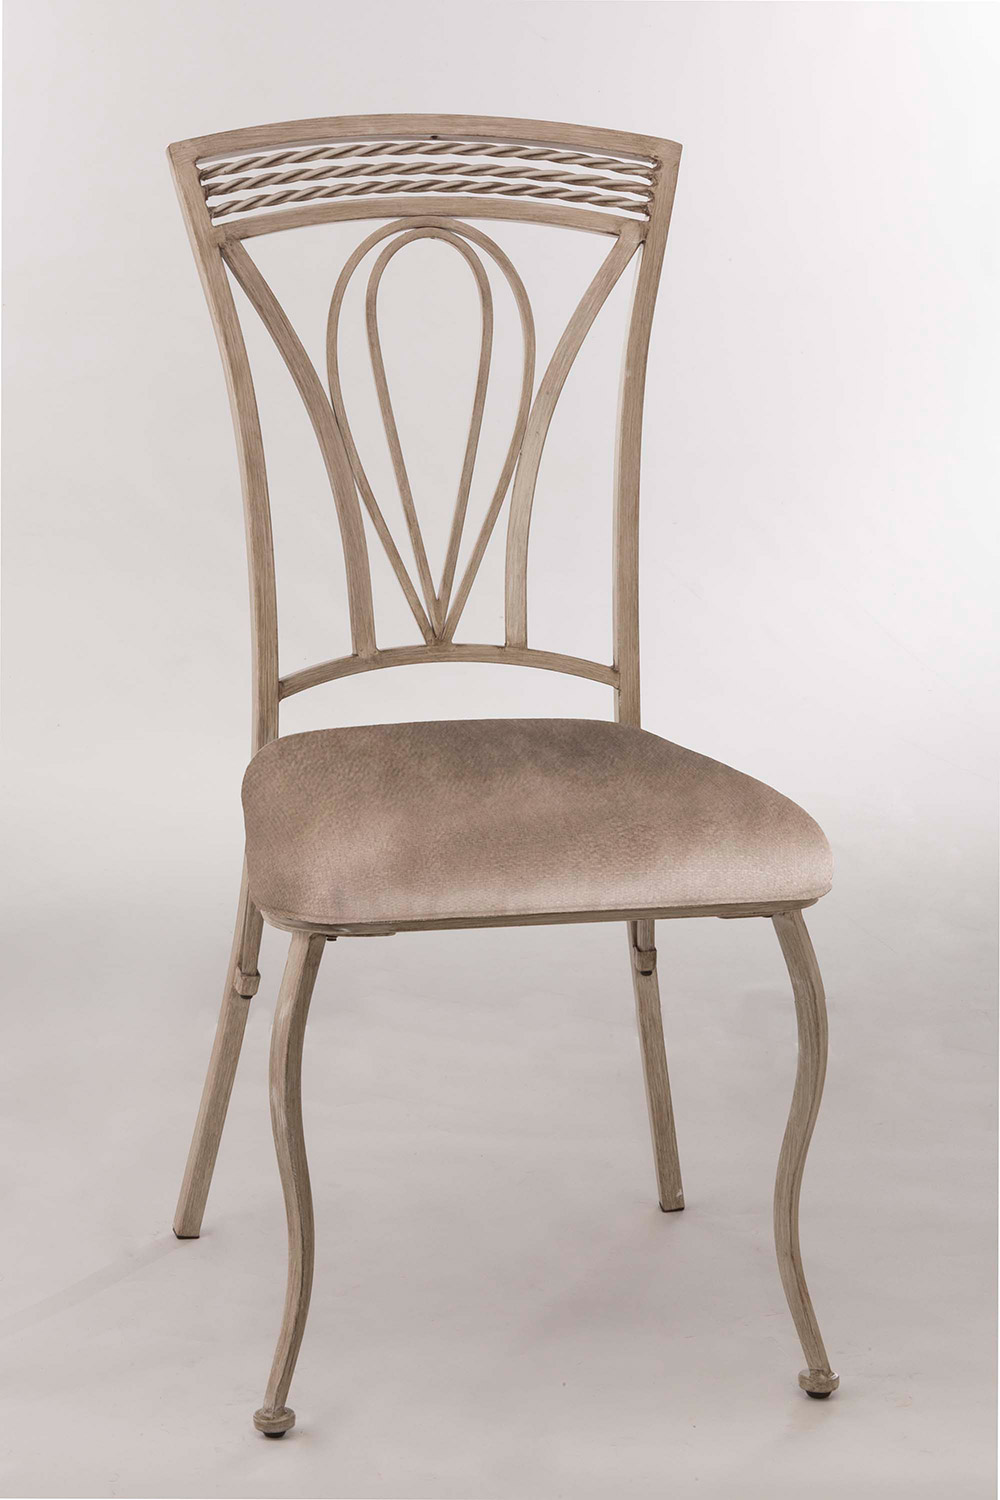 Hillsdale Napier Dining Chair - Aged Gray